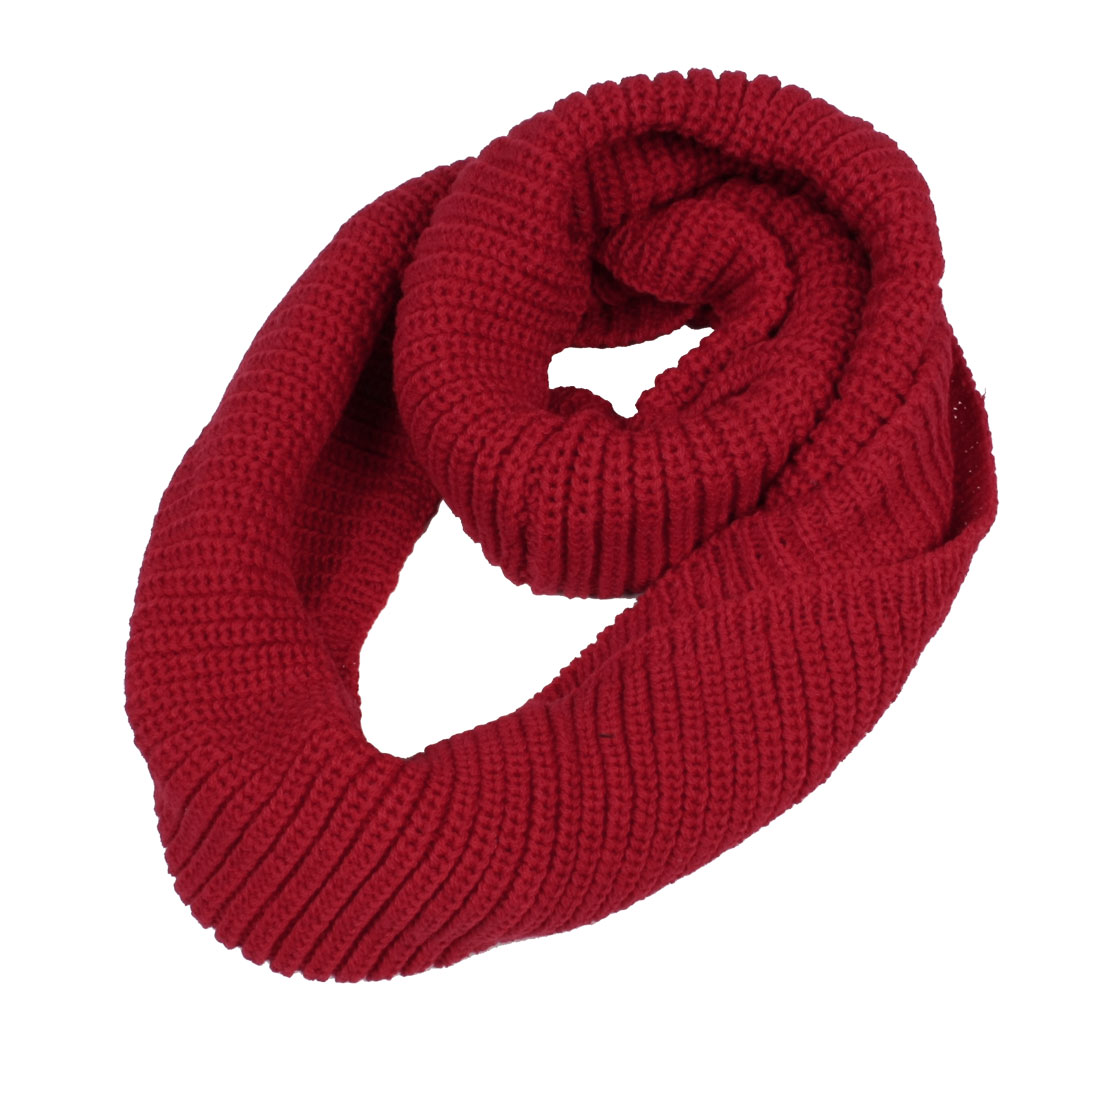 Lady Woman Knitting Neck Circle Scarf Shawl Wrap Loop Warmer Red